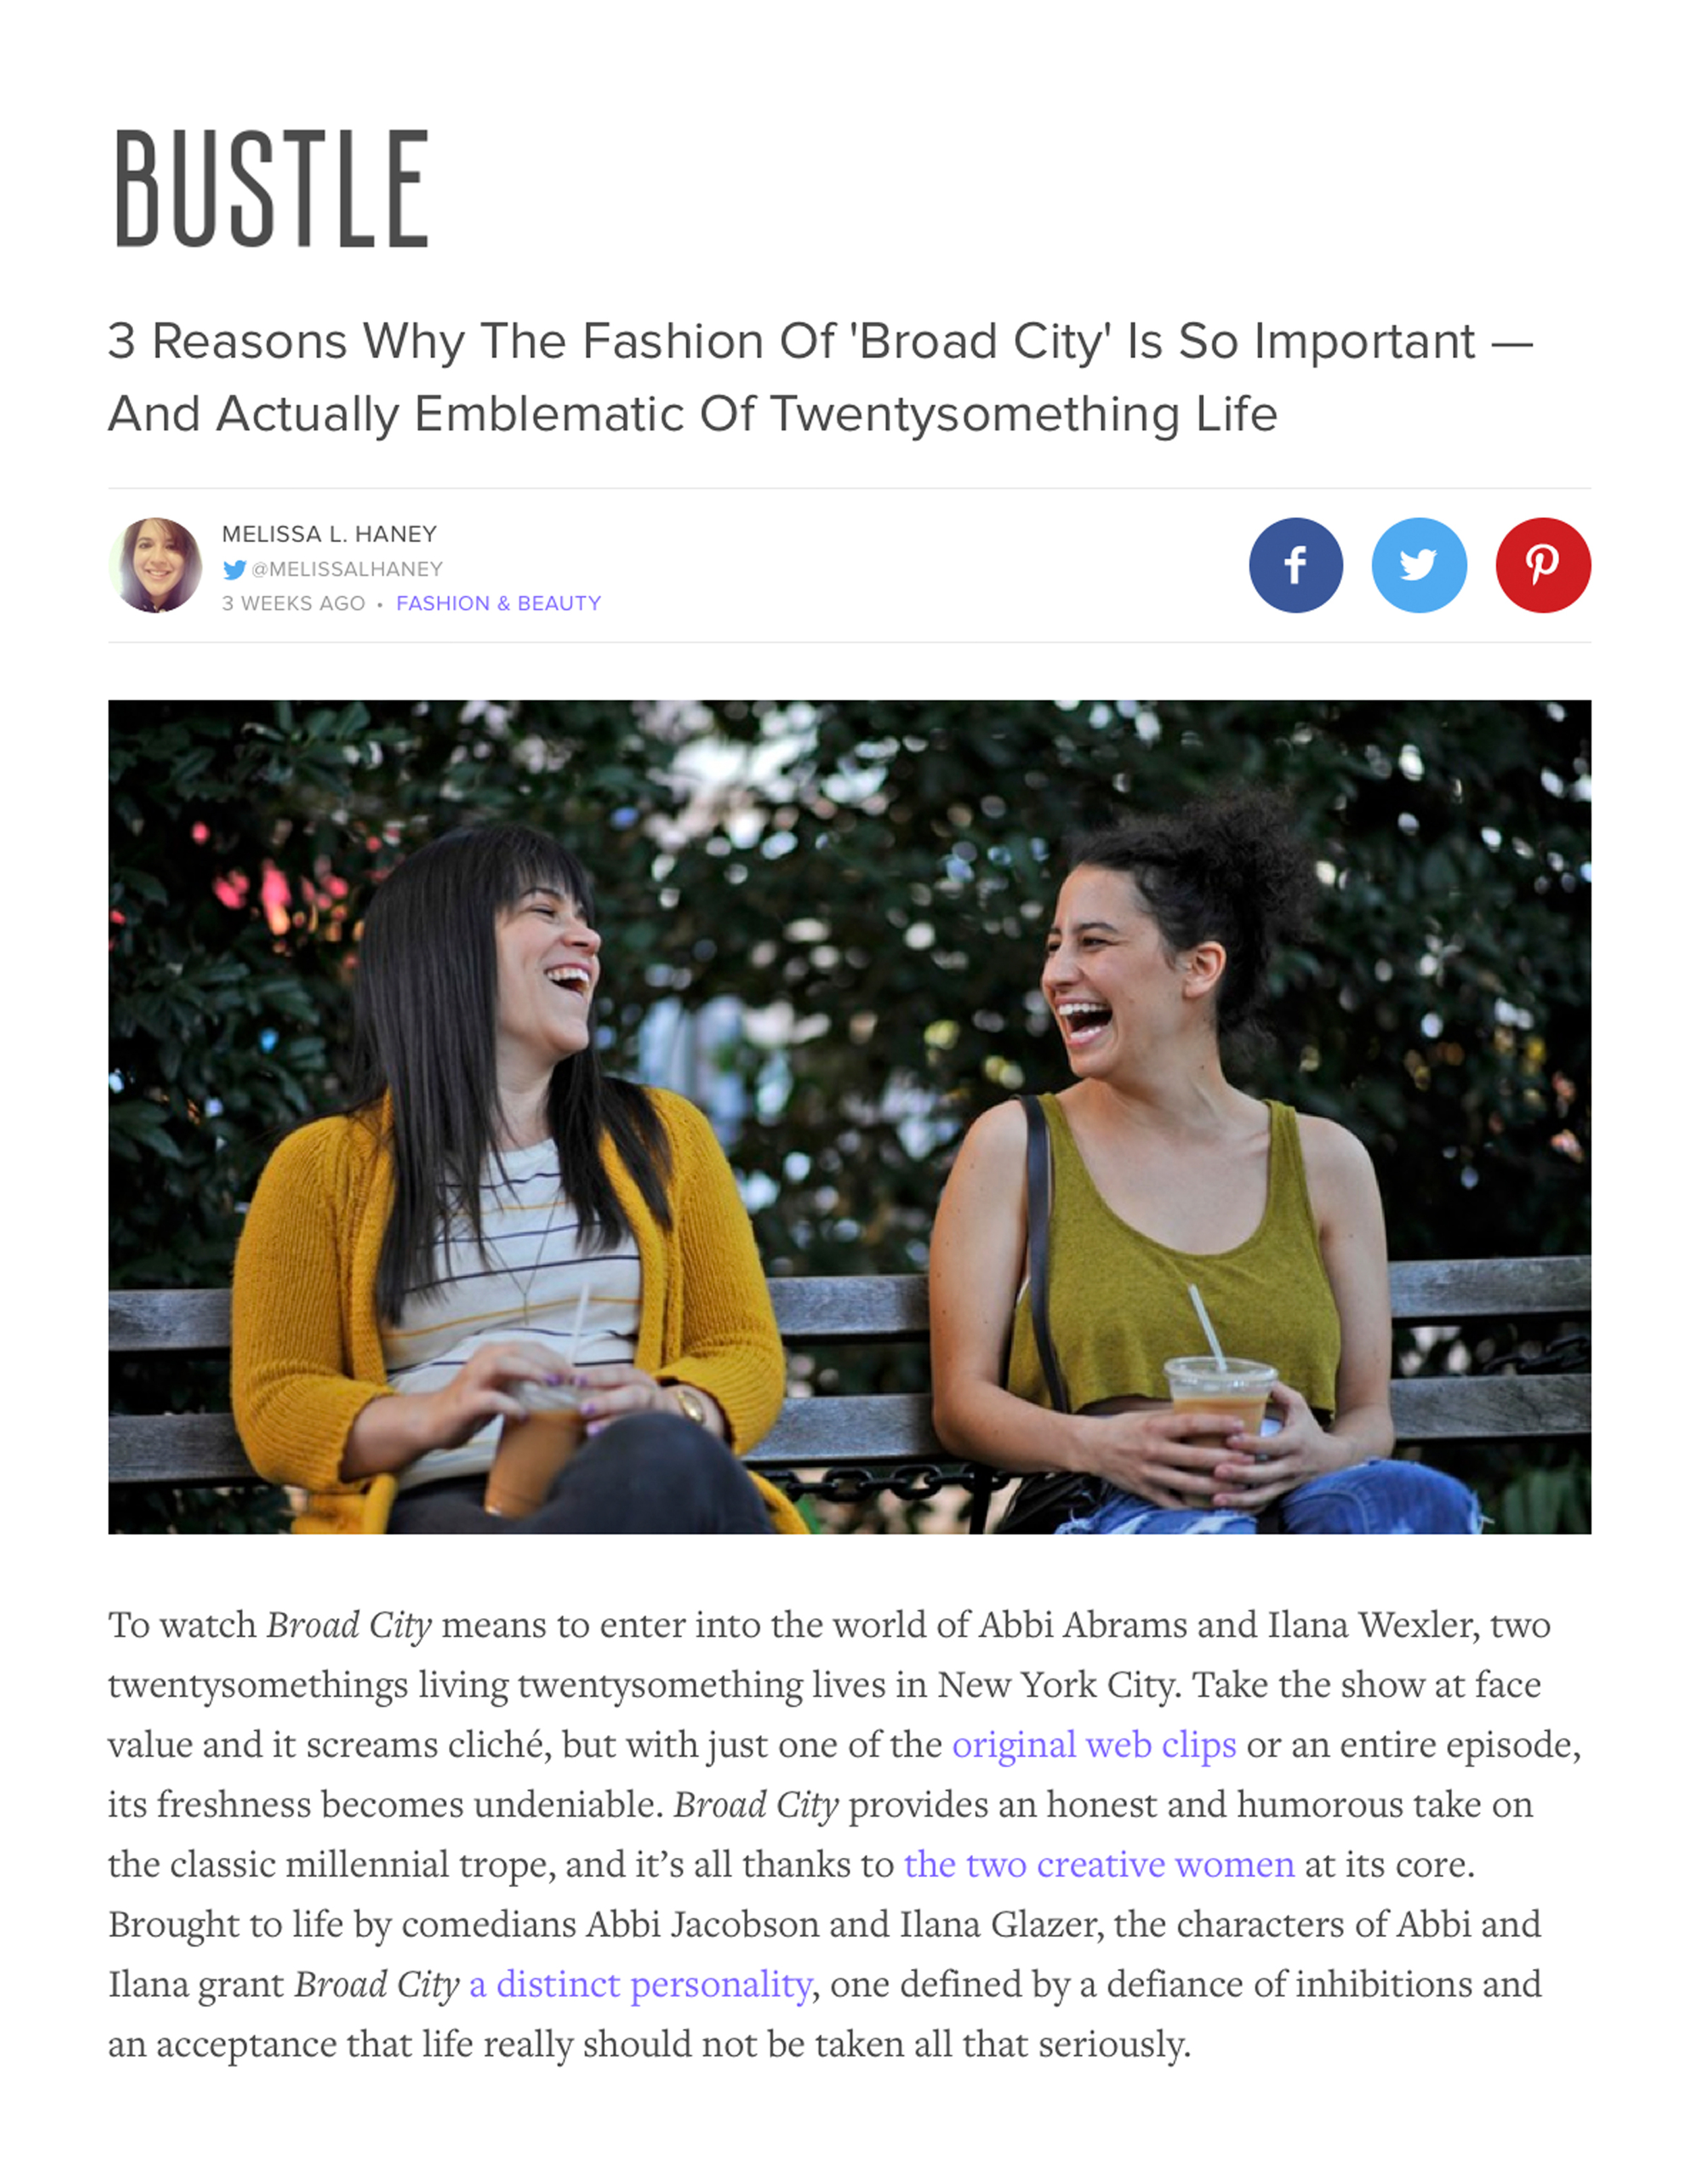 BUSTLE    3 REASONS WHY THE FASHION OF BROAD CITY IS SO IMPORTANT-- AND ACTUALLY EMBLEMATIC OF TWENTYSOMETHING LIFE    FEBRUARY 2015